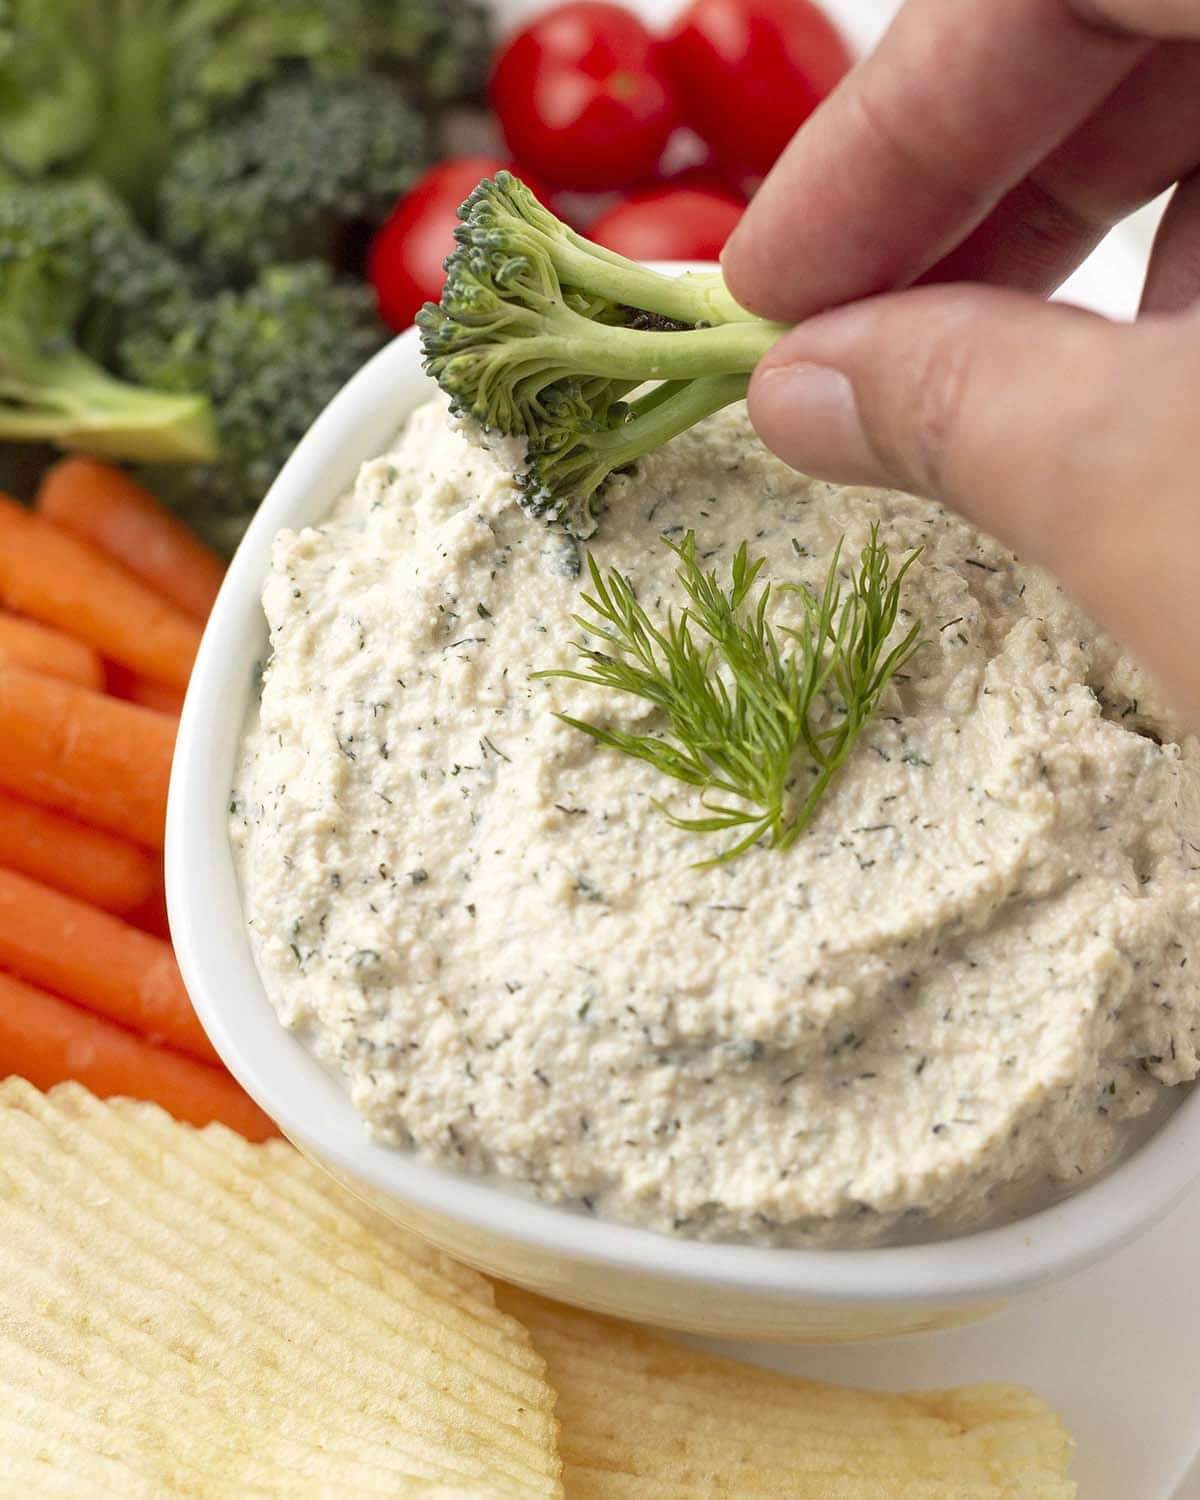 A hand dipping a piece of fresh broccoli into a bowl of dip.